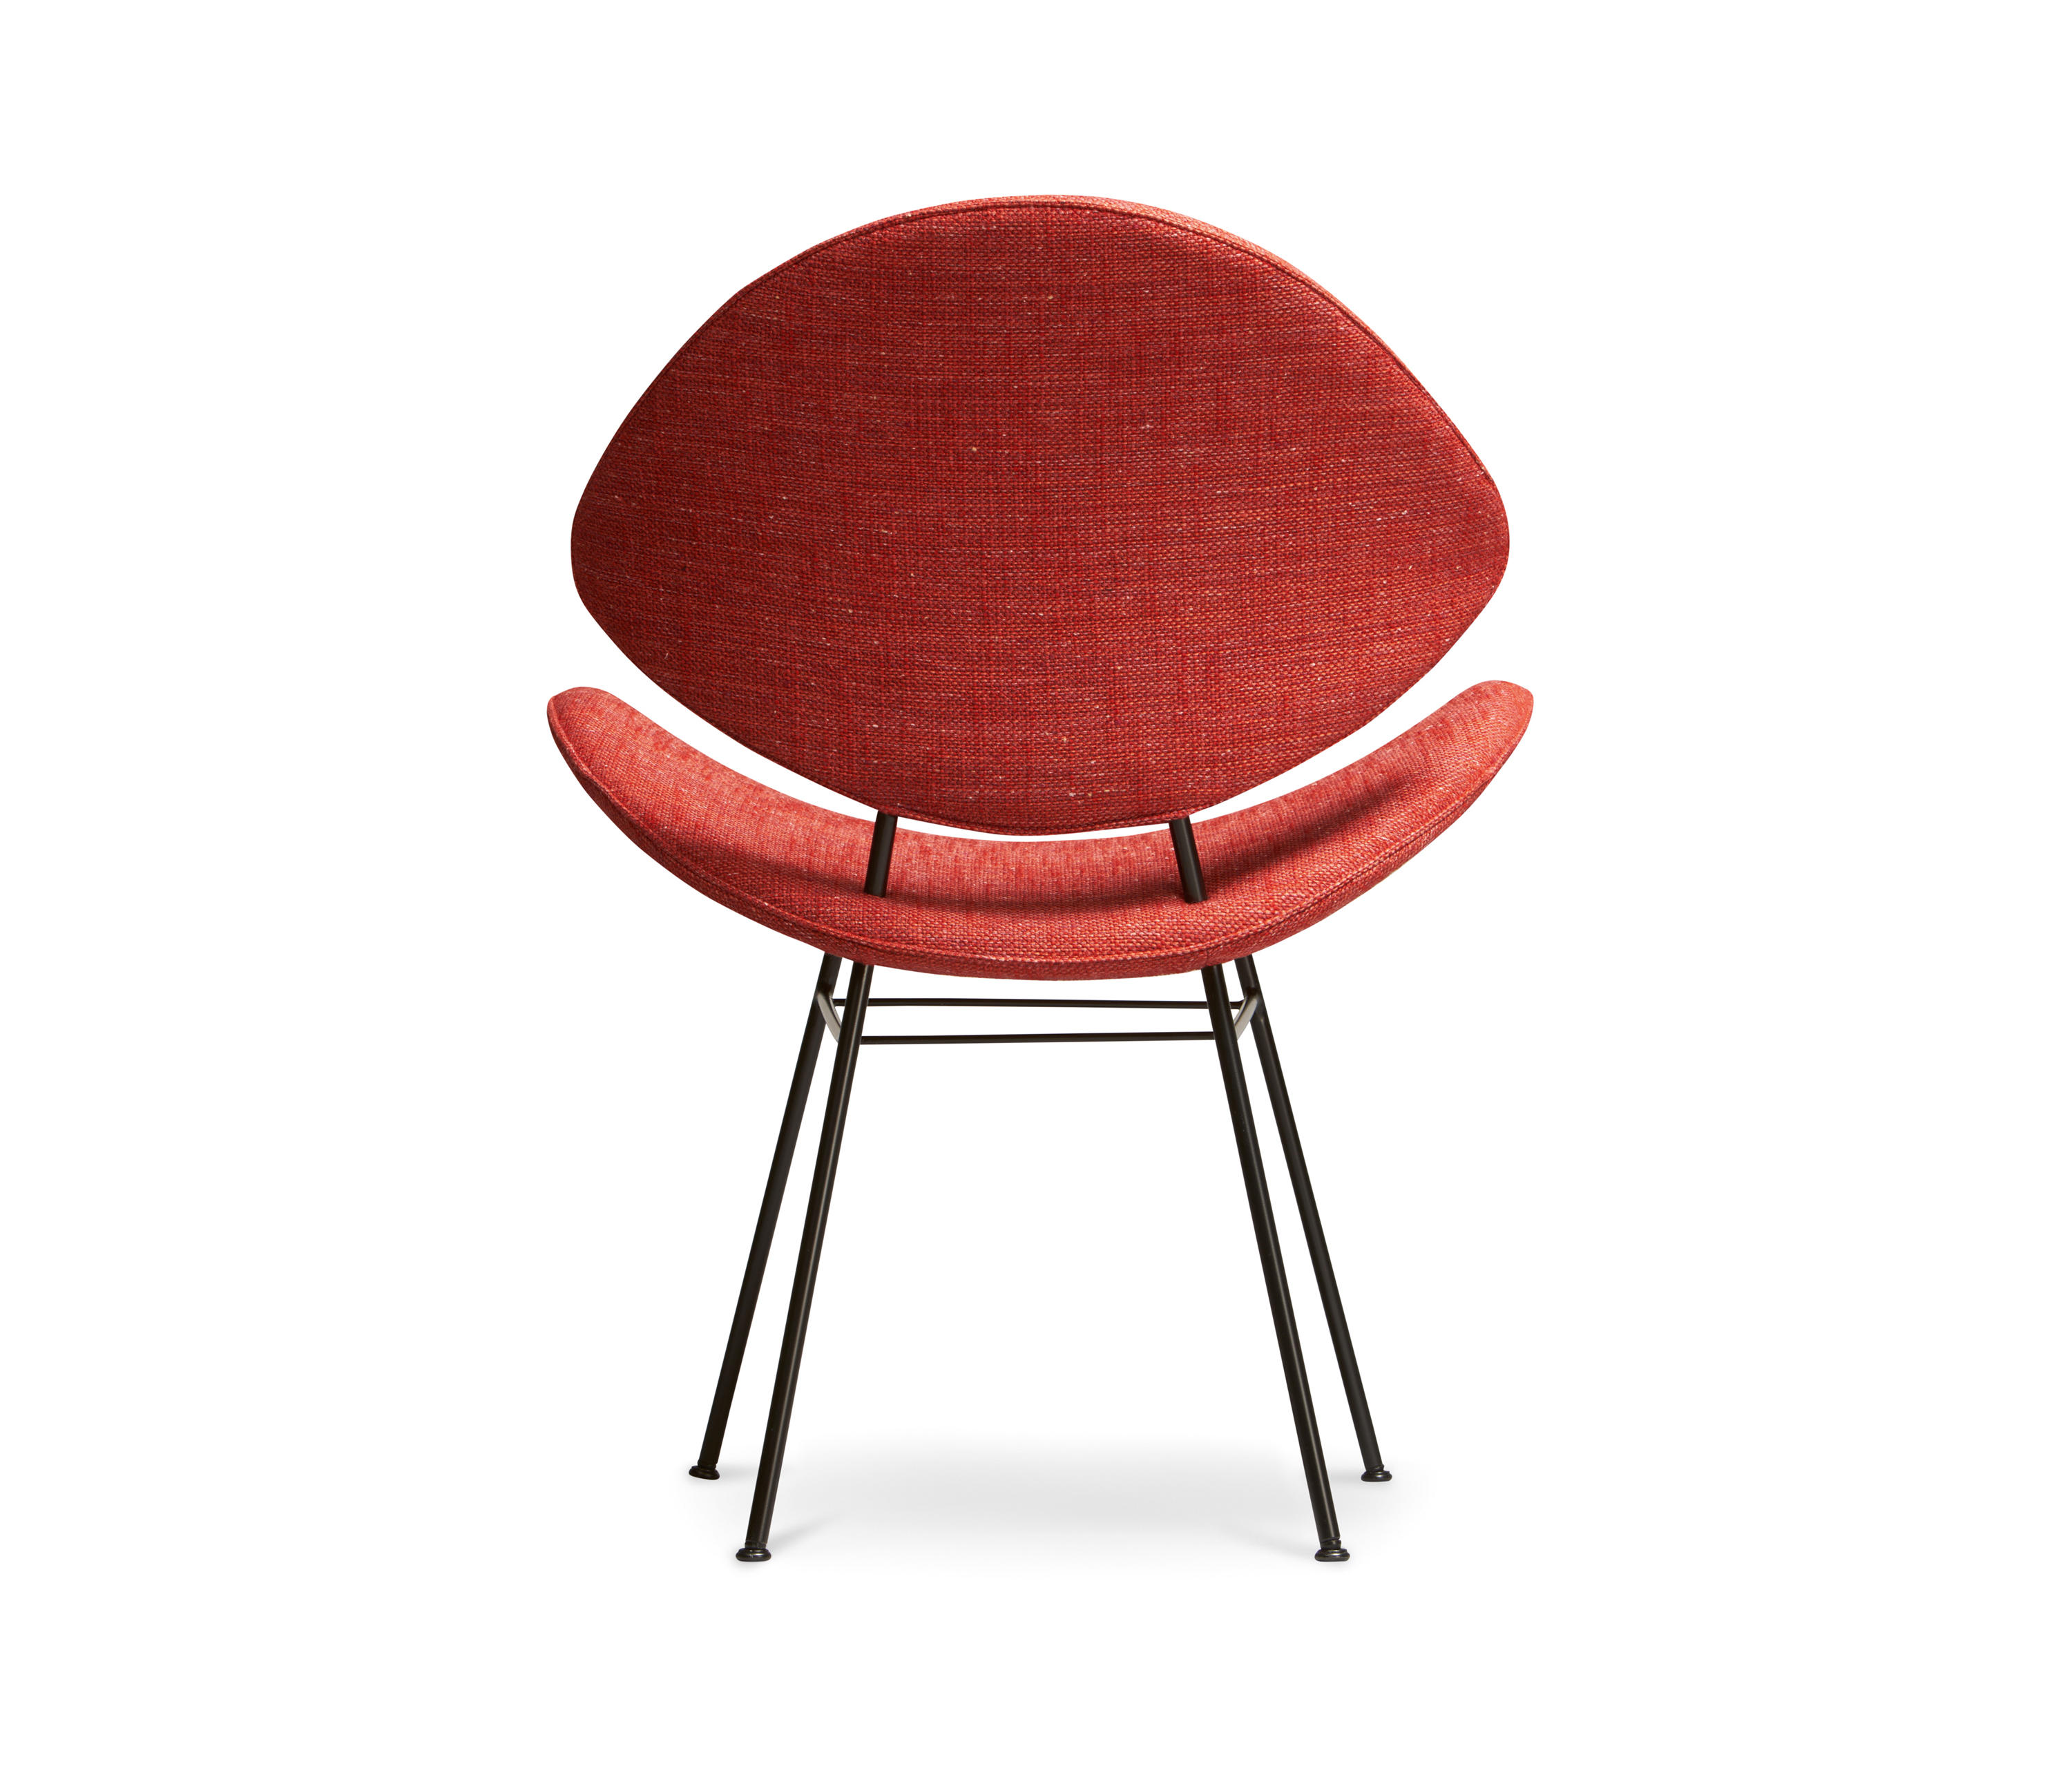 FISHNET CHAIR - Chairs from Walter Knoll | Architonic